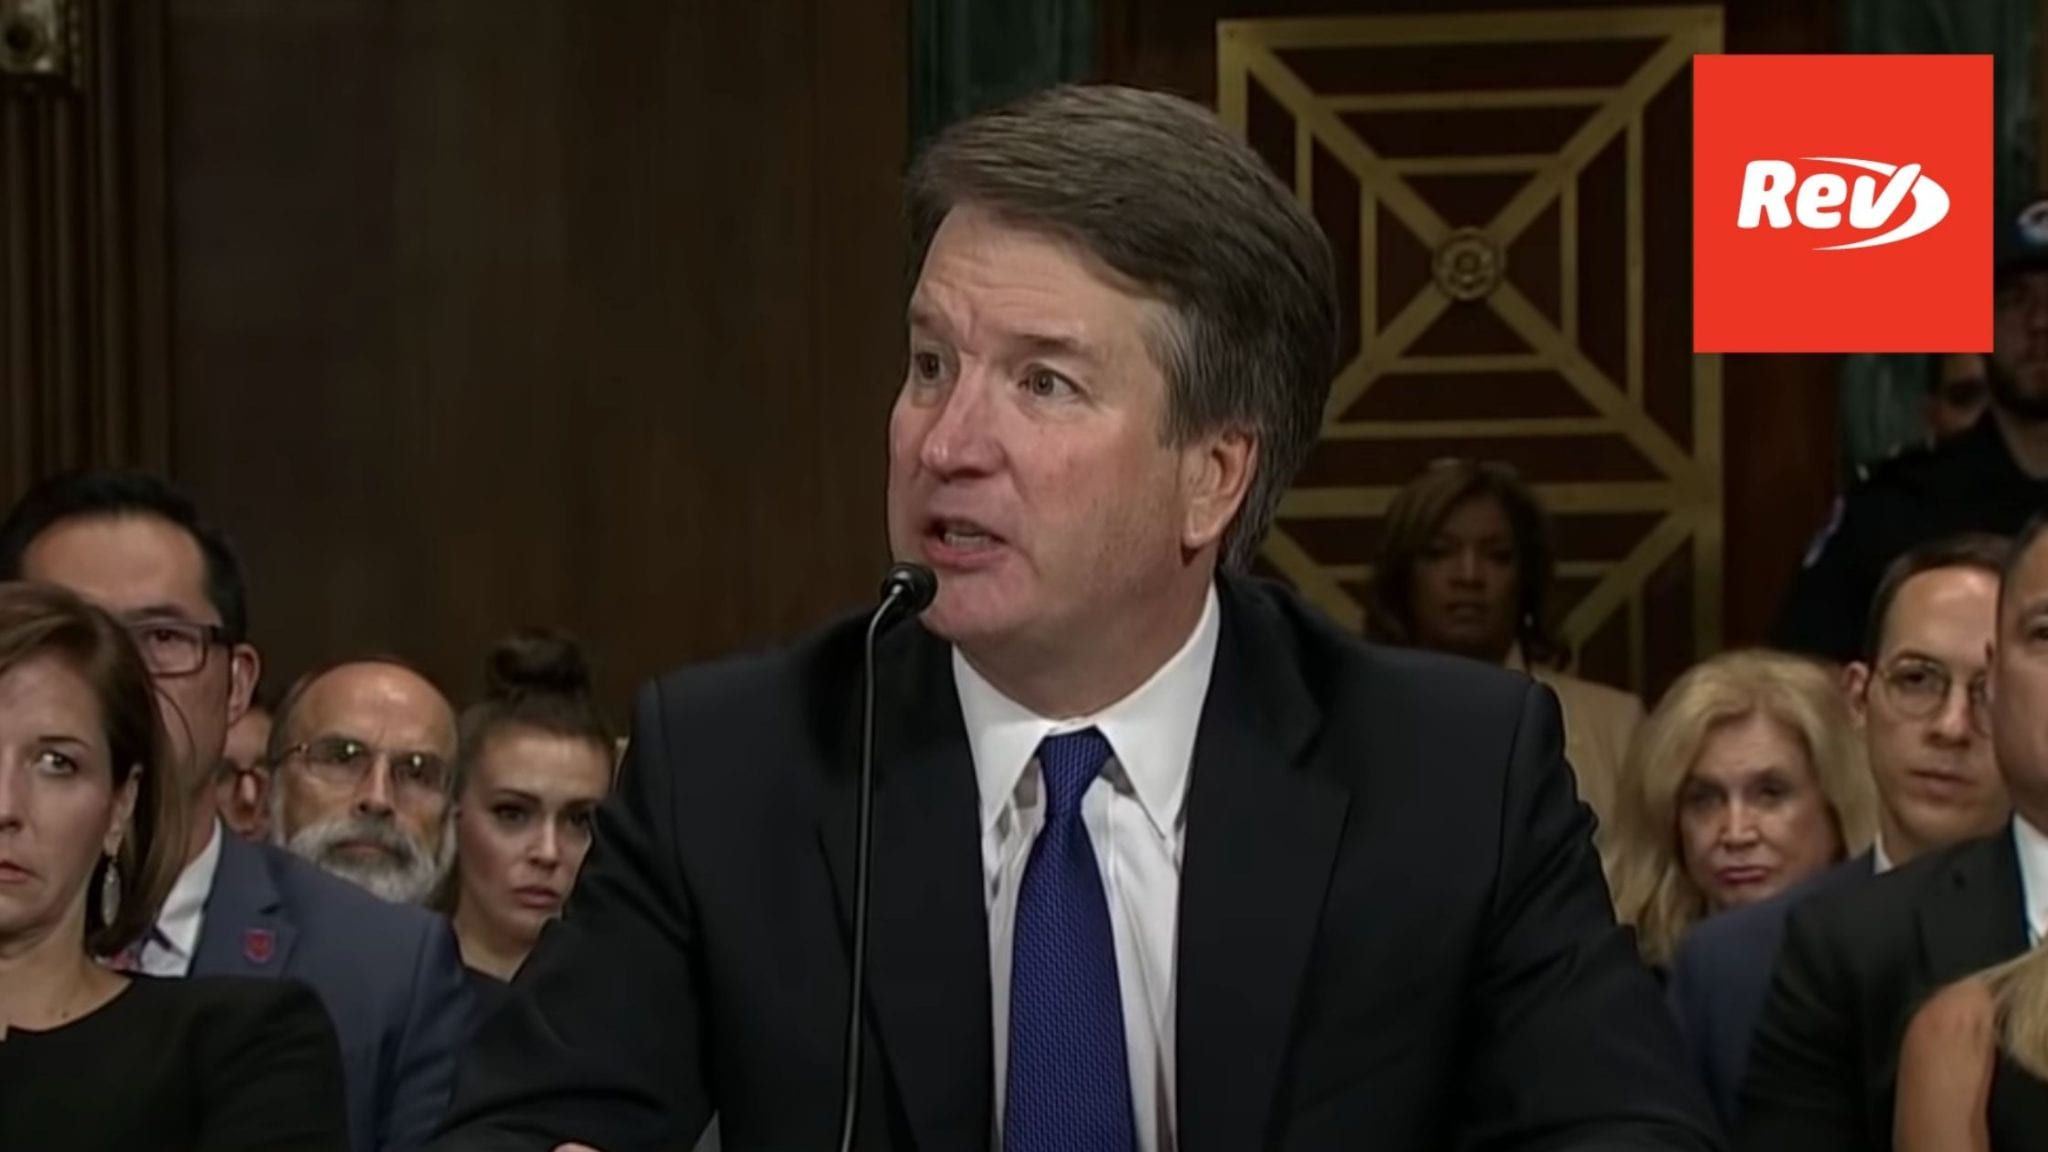 Brett Kavanaugh Doctor Ford Hearing